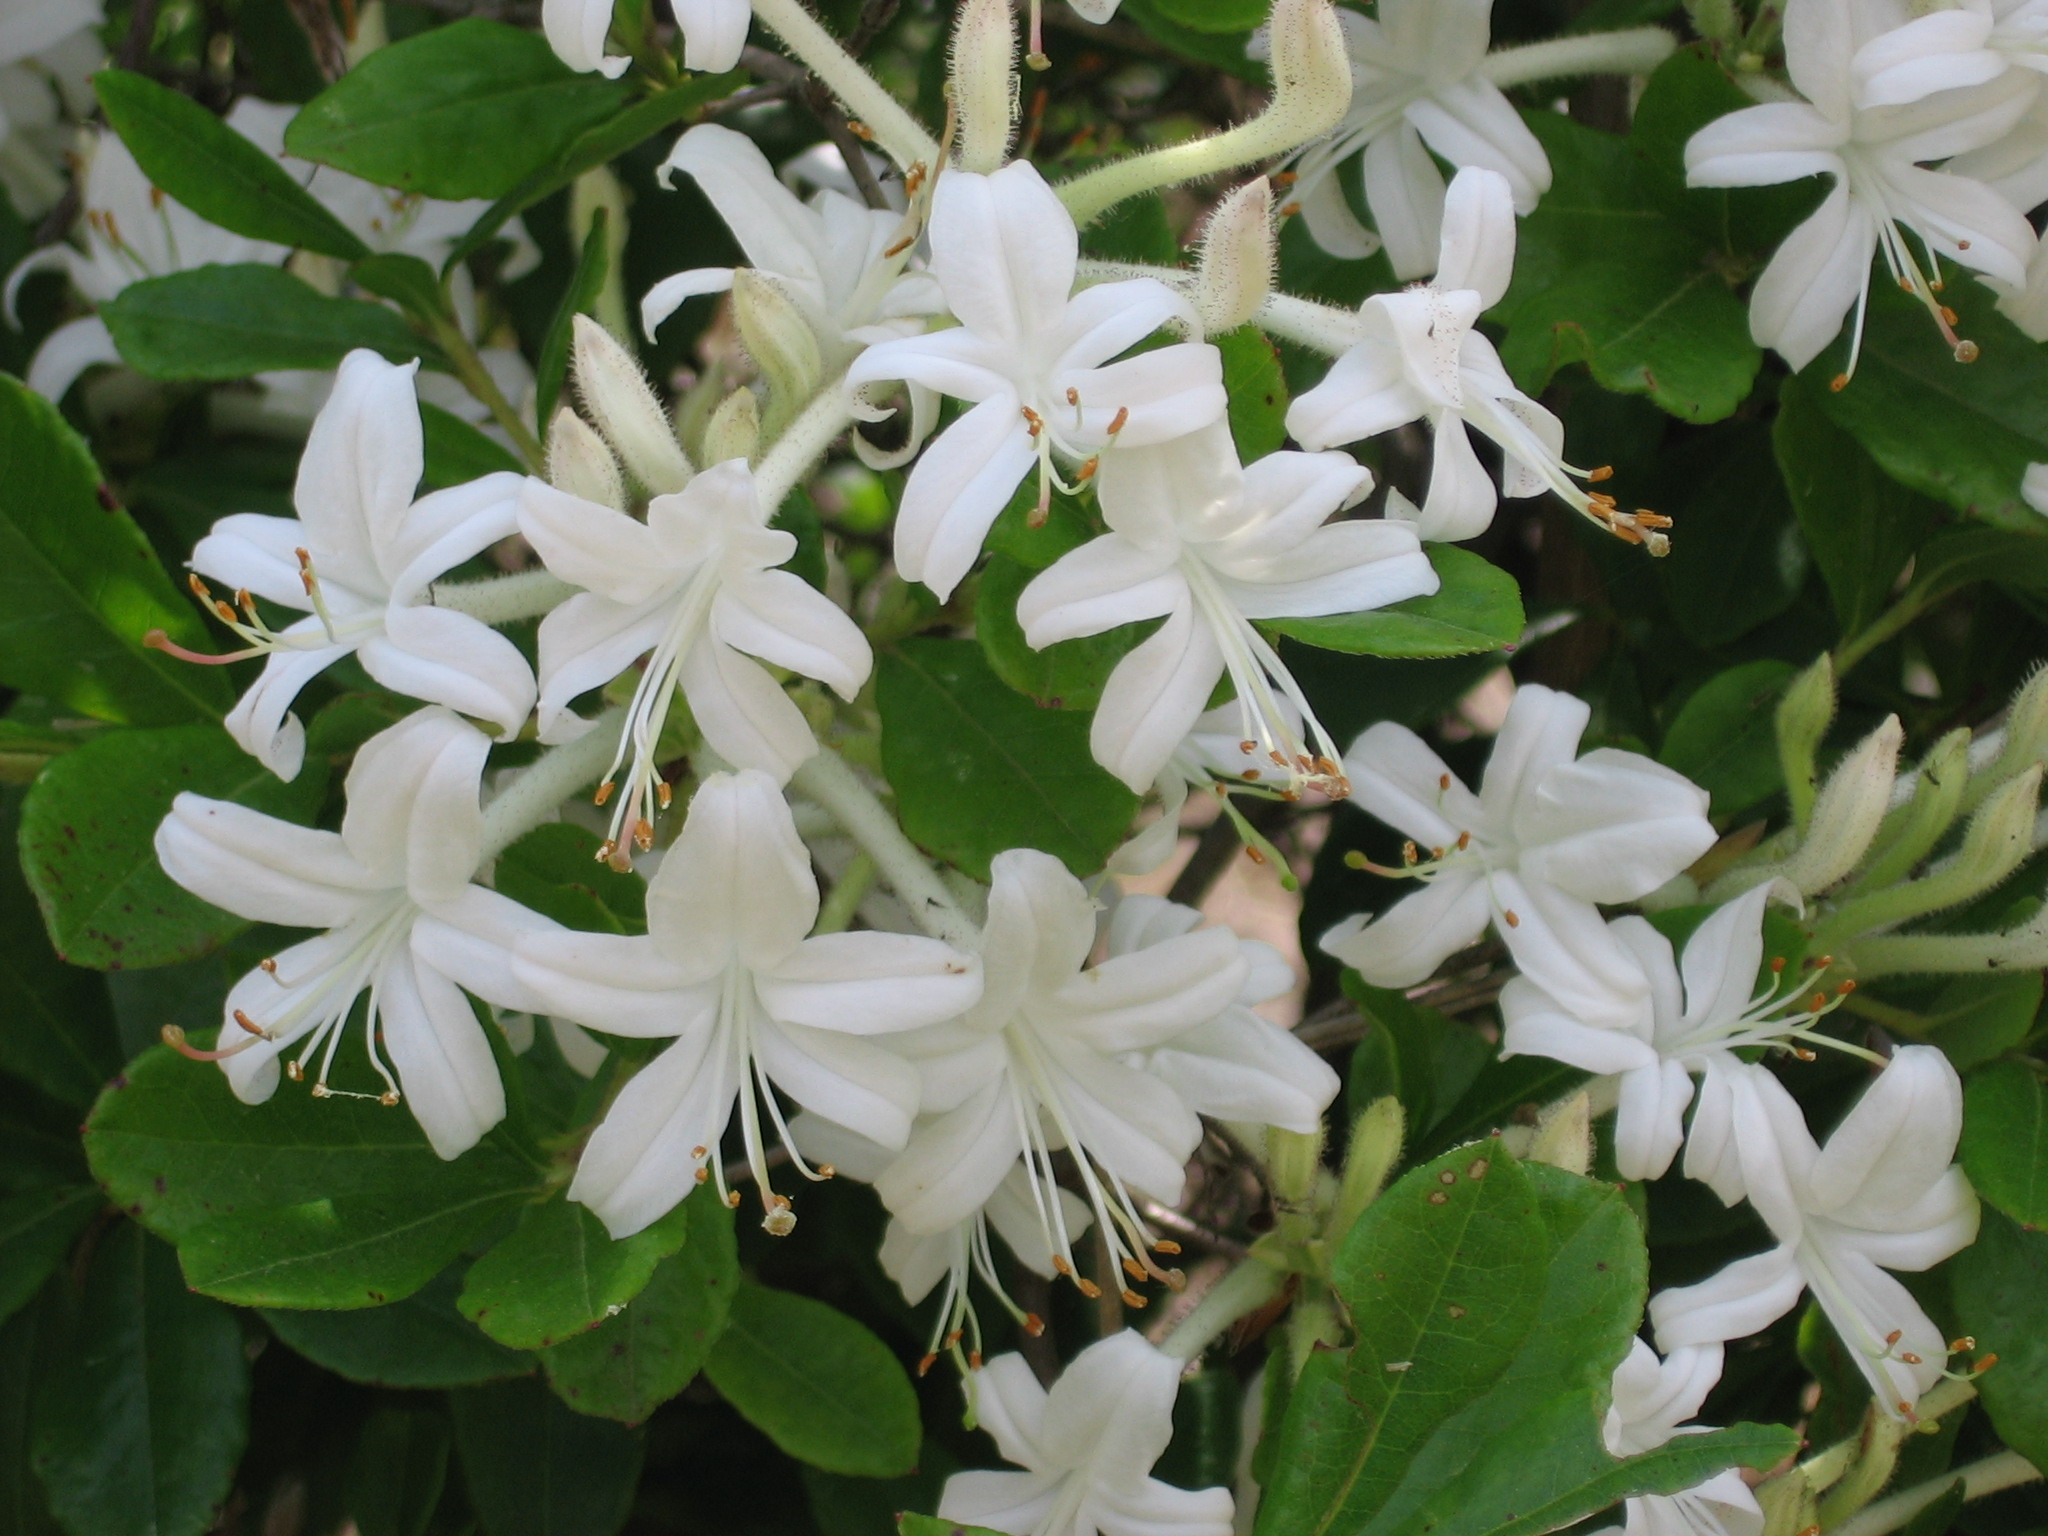 Natural landscapes nursery native azaleas swamp azalea image abundant small fragrant white flowers mightylinksfo